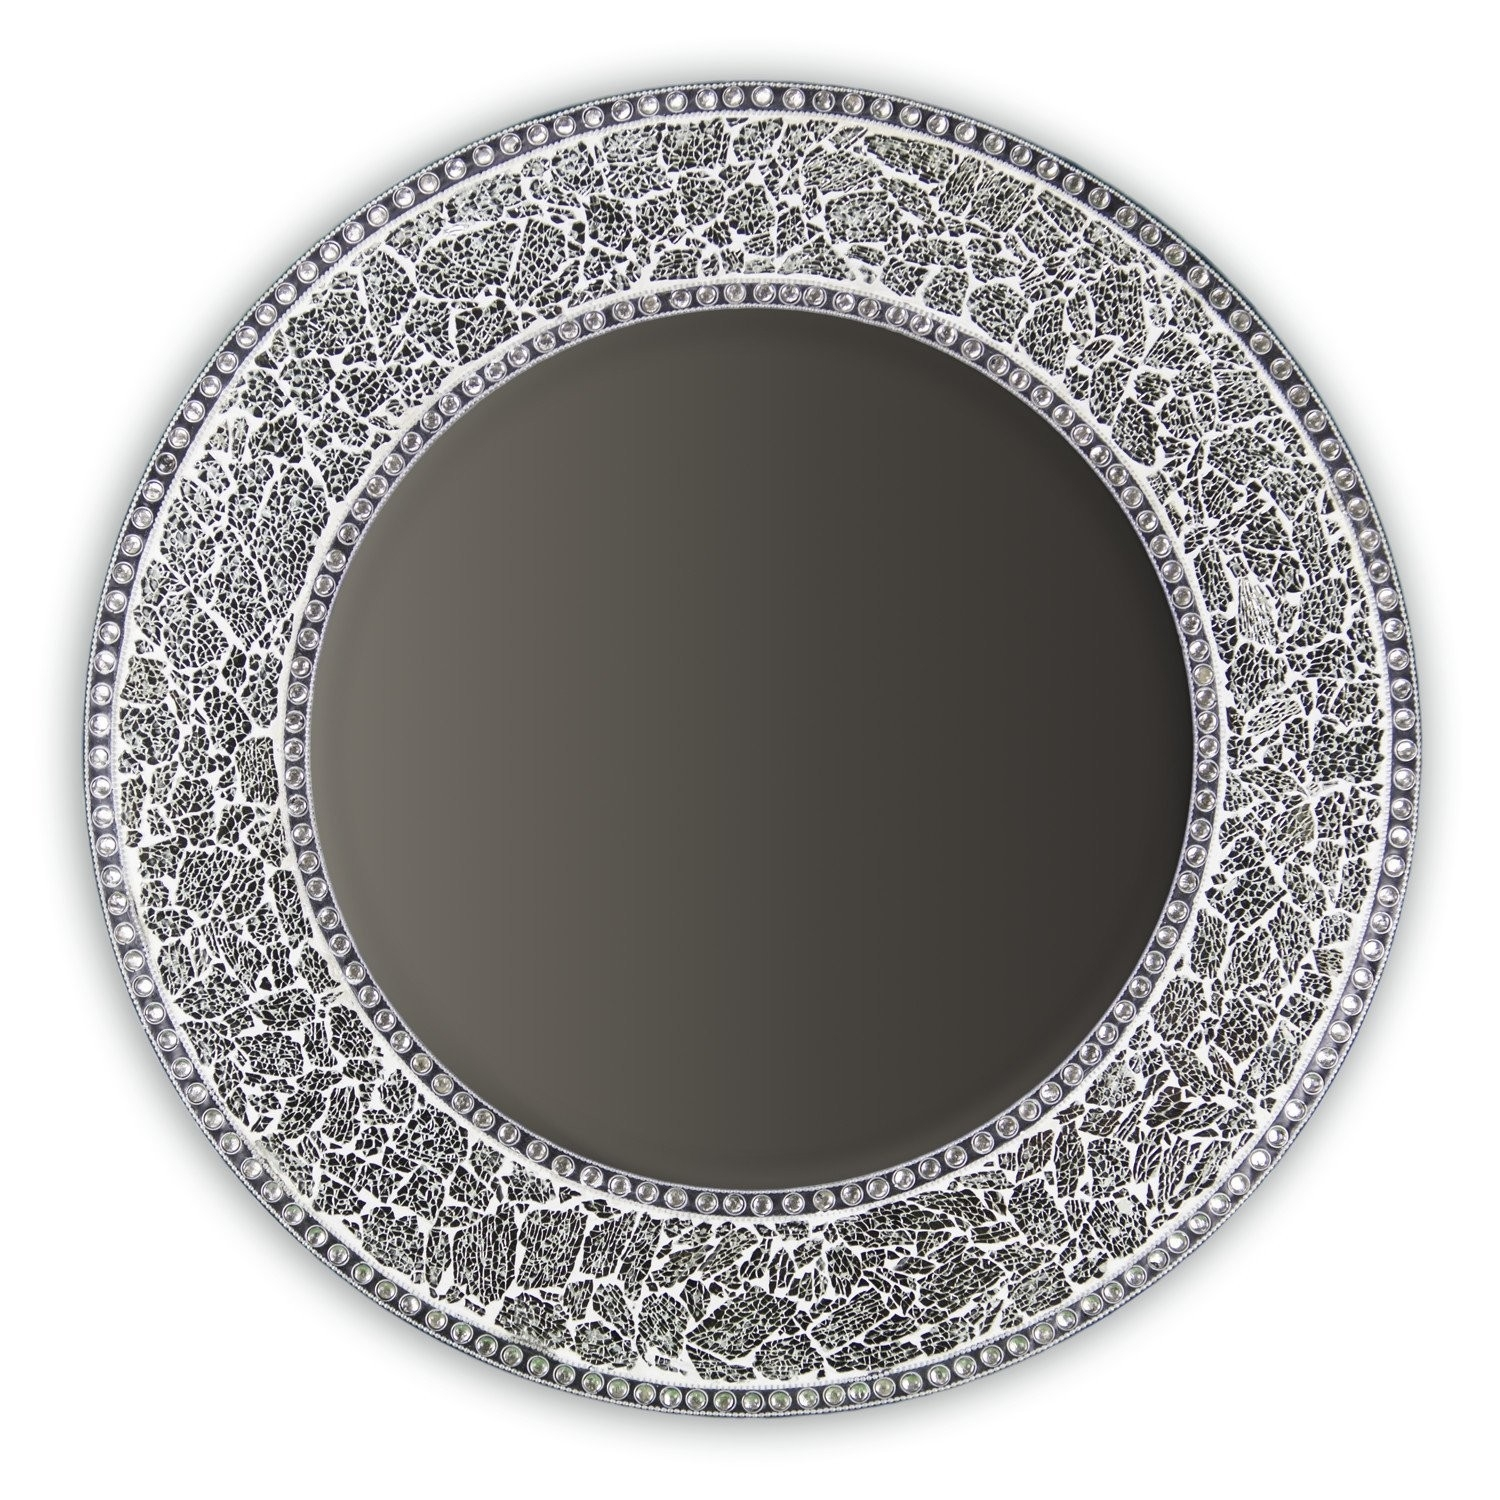 Buy 24 Silver Round Crackled Glass Mosaic Decorative Wall Mirror Regarding Round Mosaic Wall Mirror (Image 2 of 15)